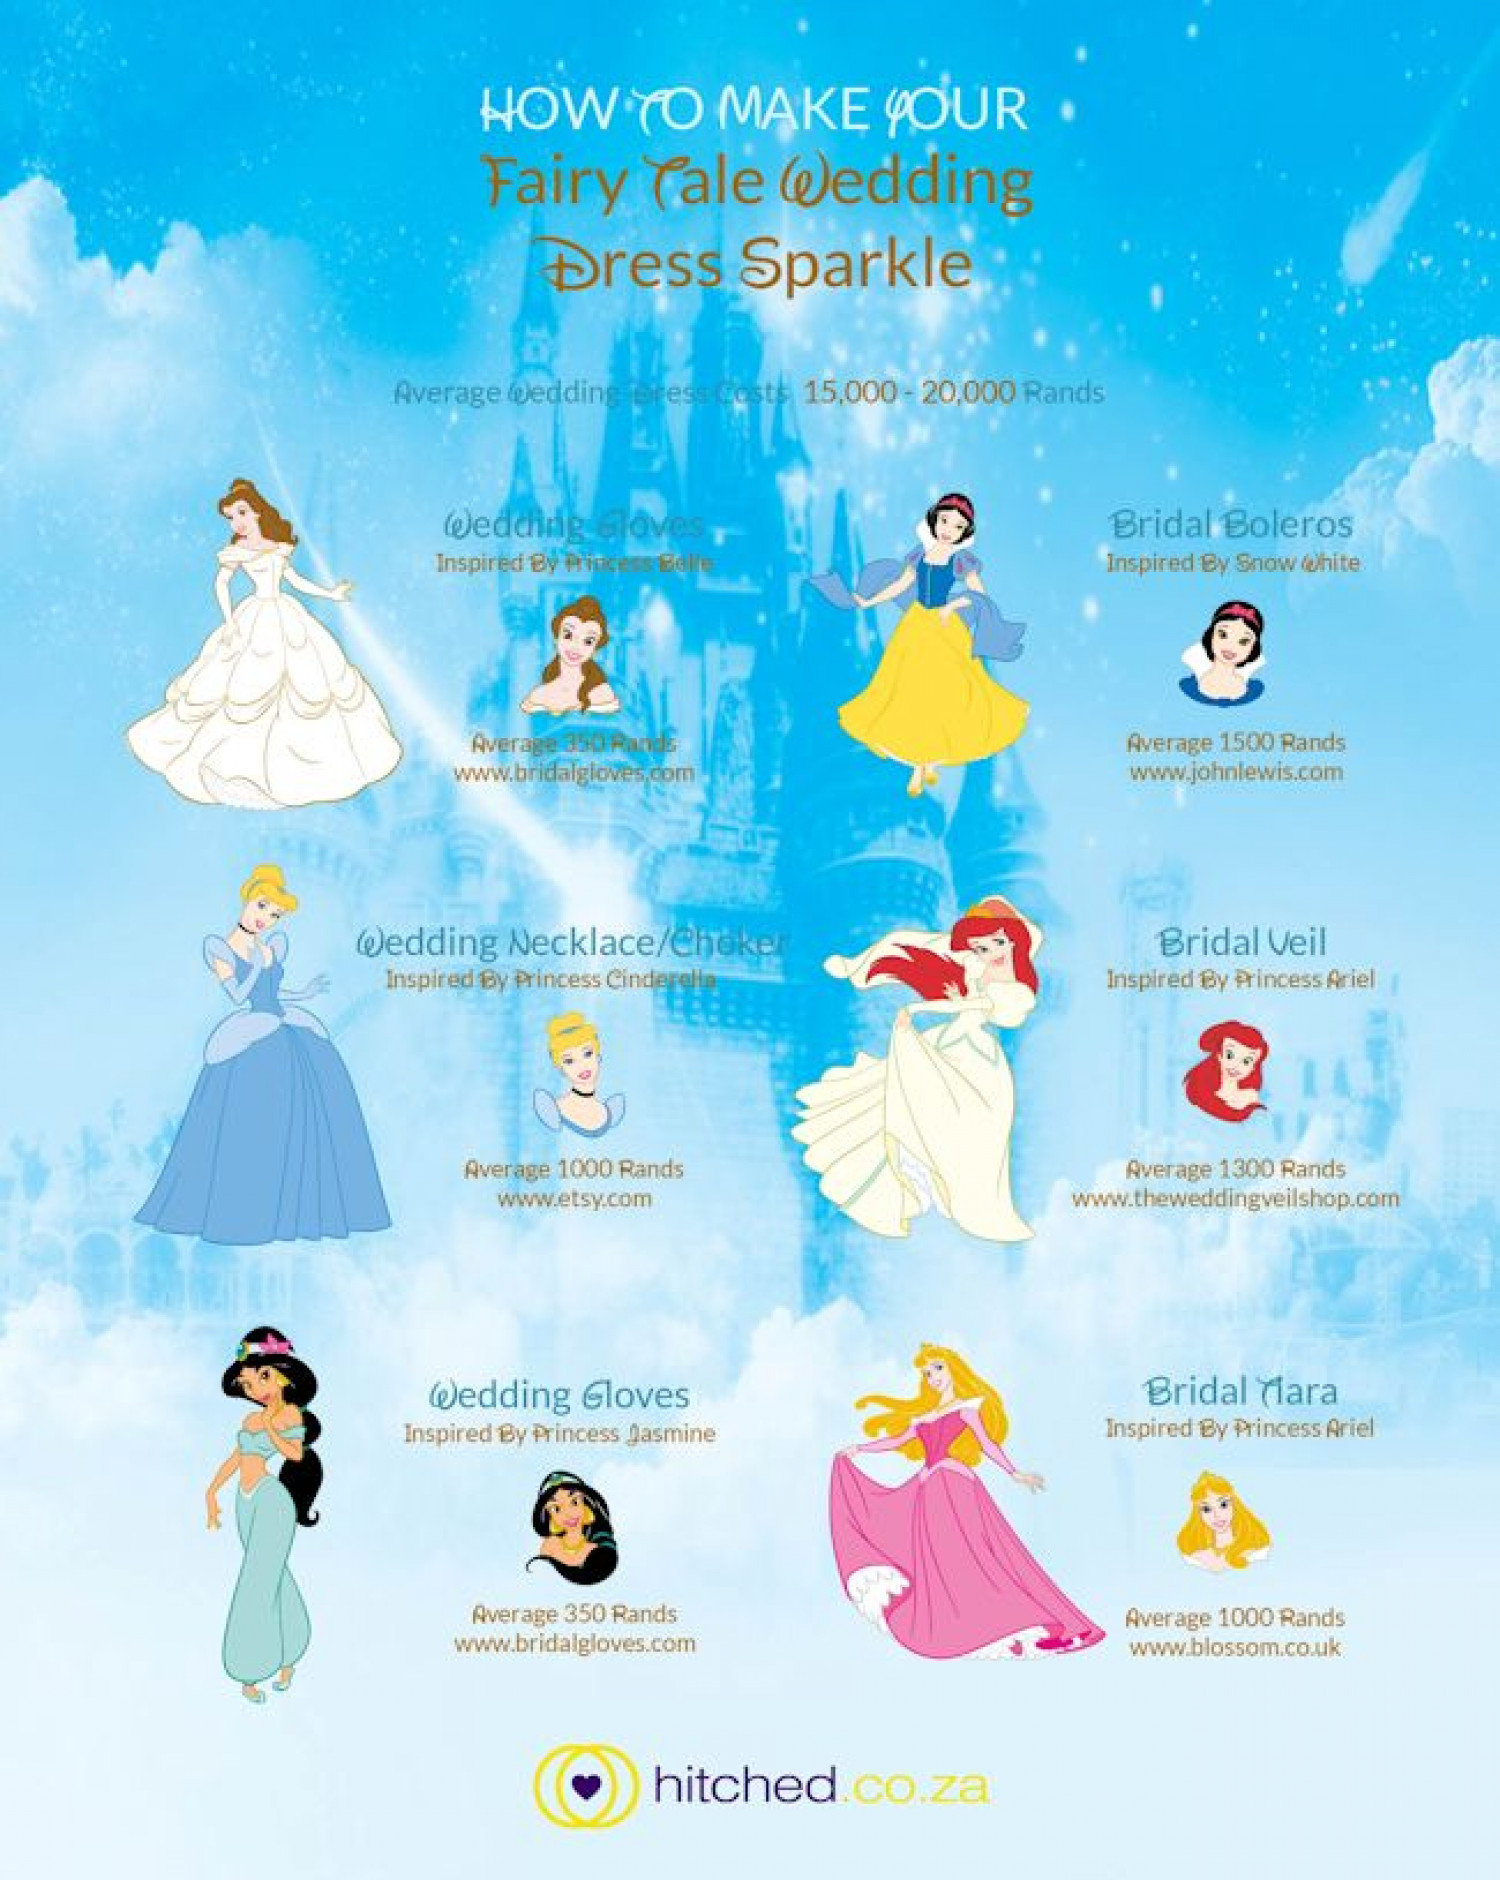 How To Make Your Fairytale Wedding Dress Sparkle Infographic